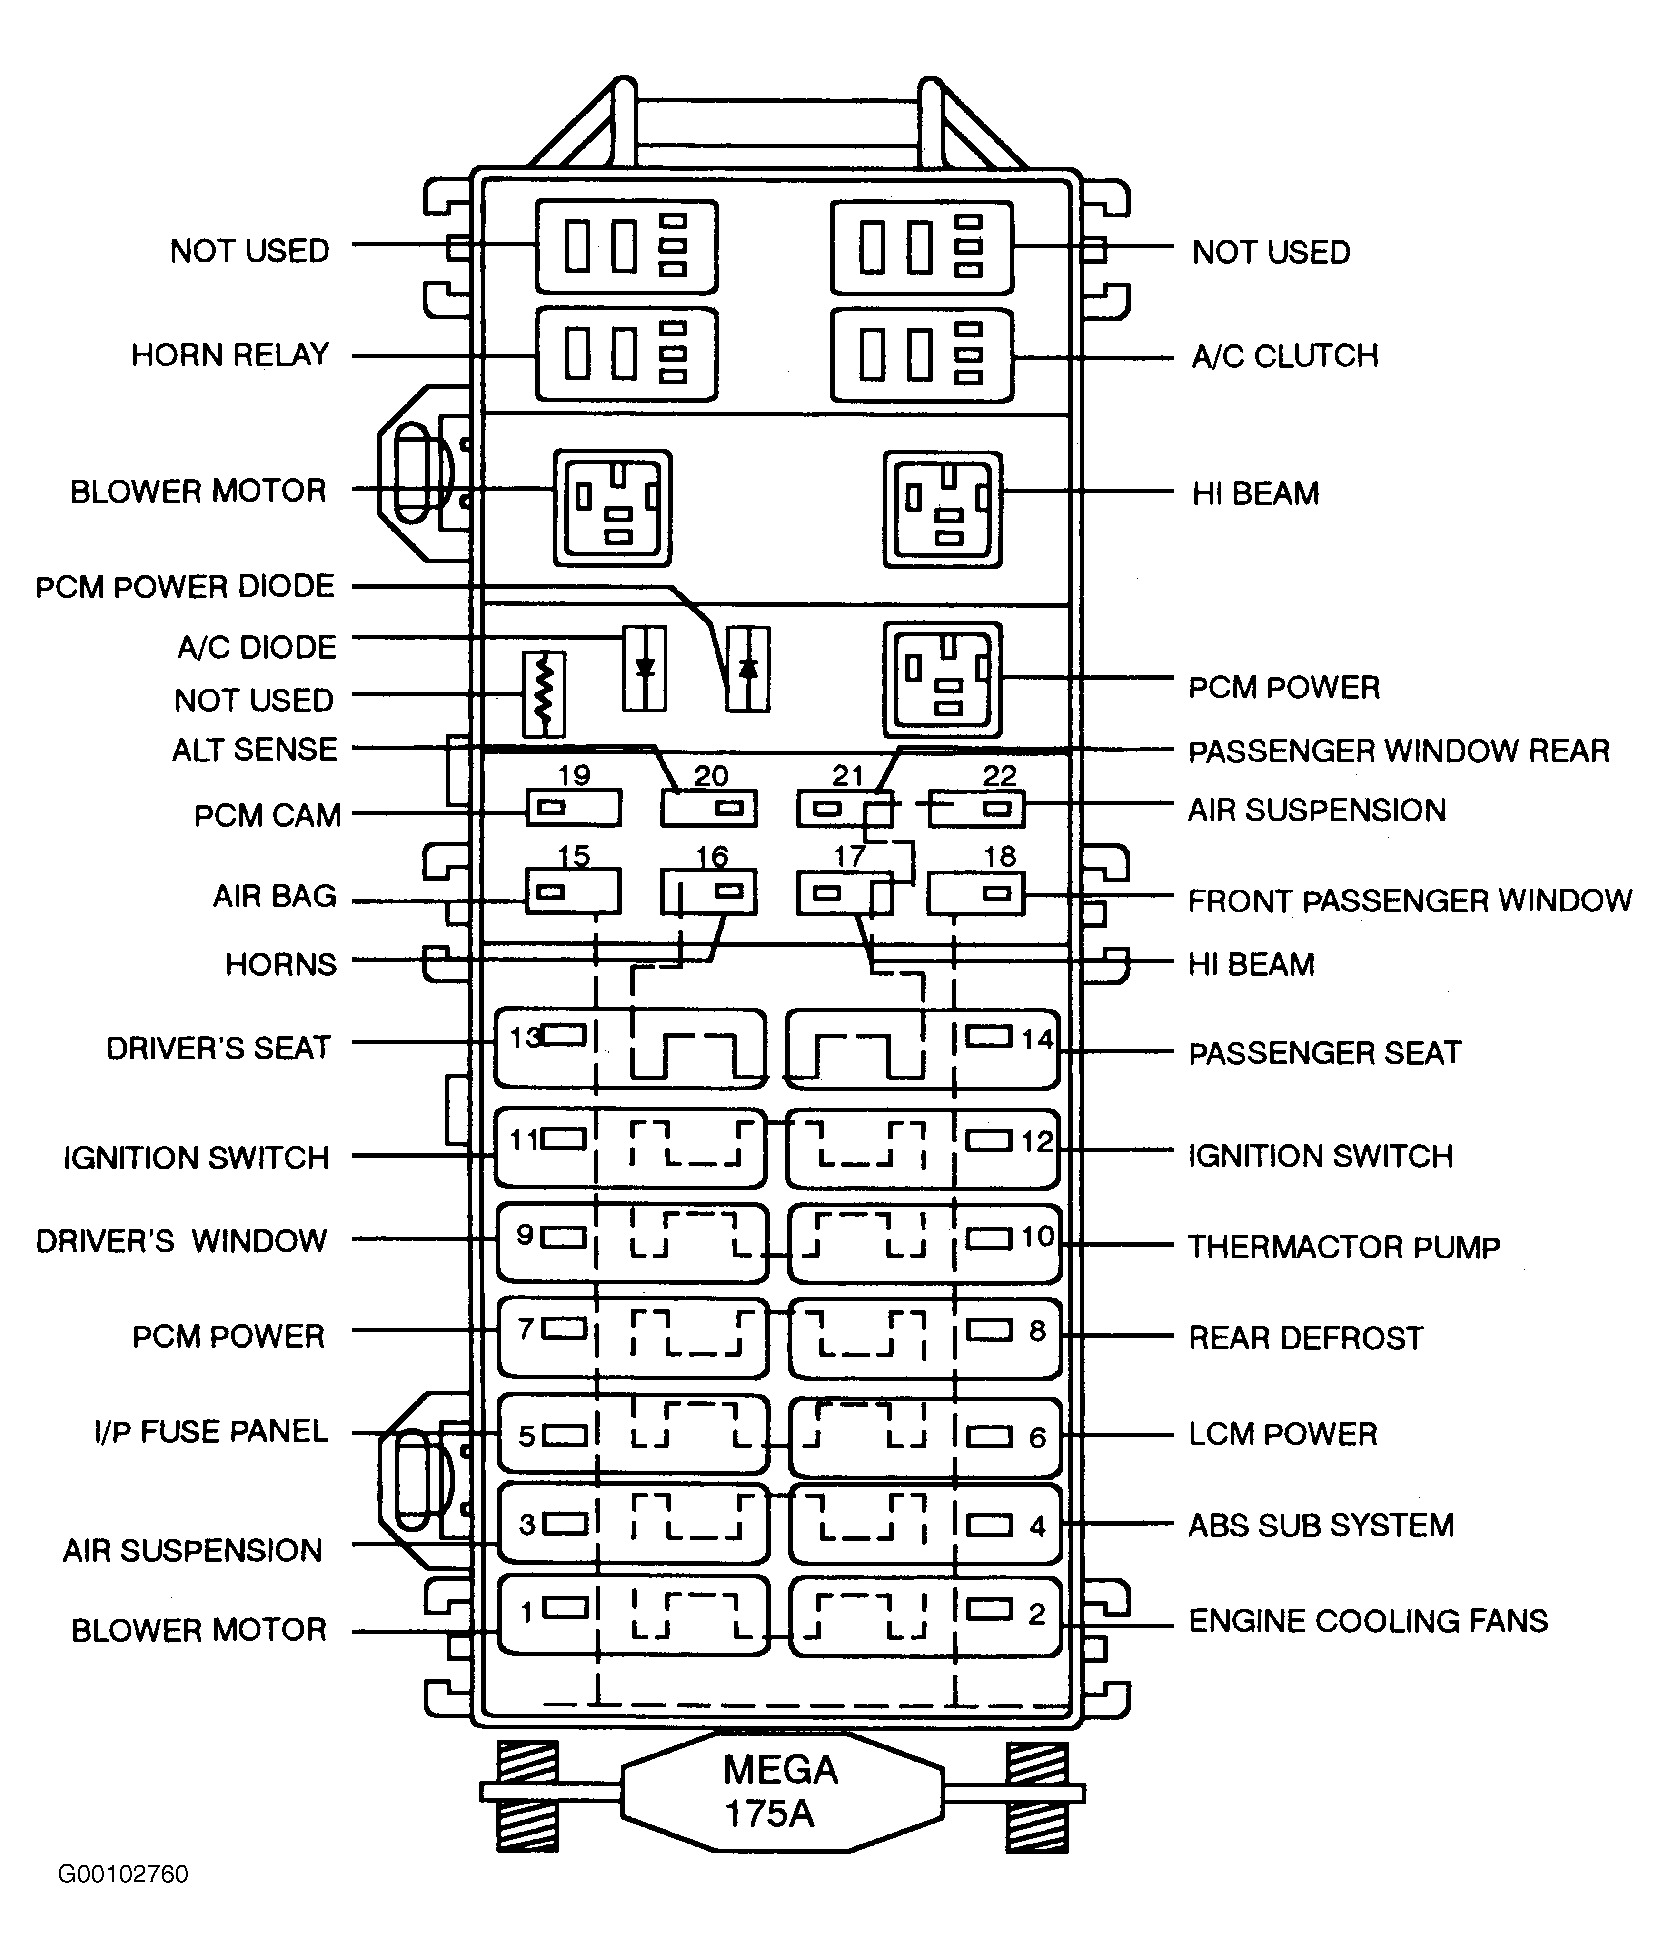 1999 Saturn Sc1 Fuse Box 1997 Lincoln Town Car Location Wiring Diagram Libraries Continental Todayslincoln Library